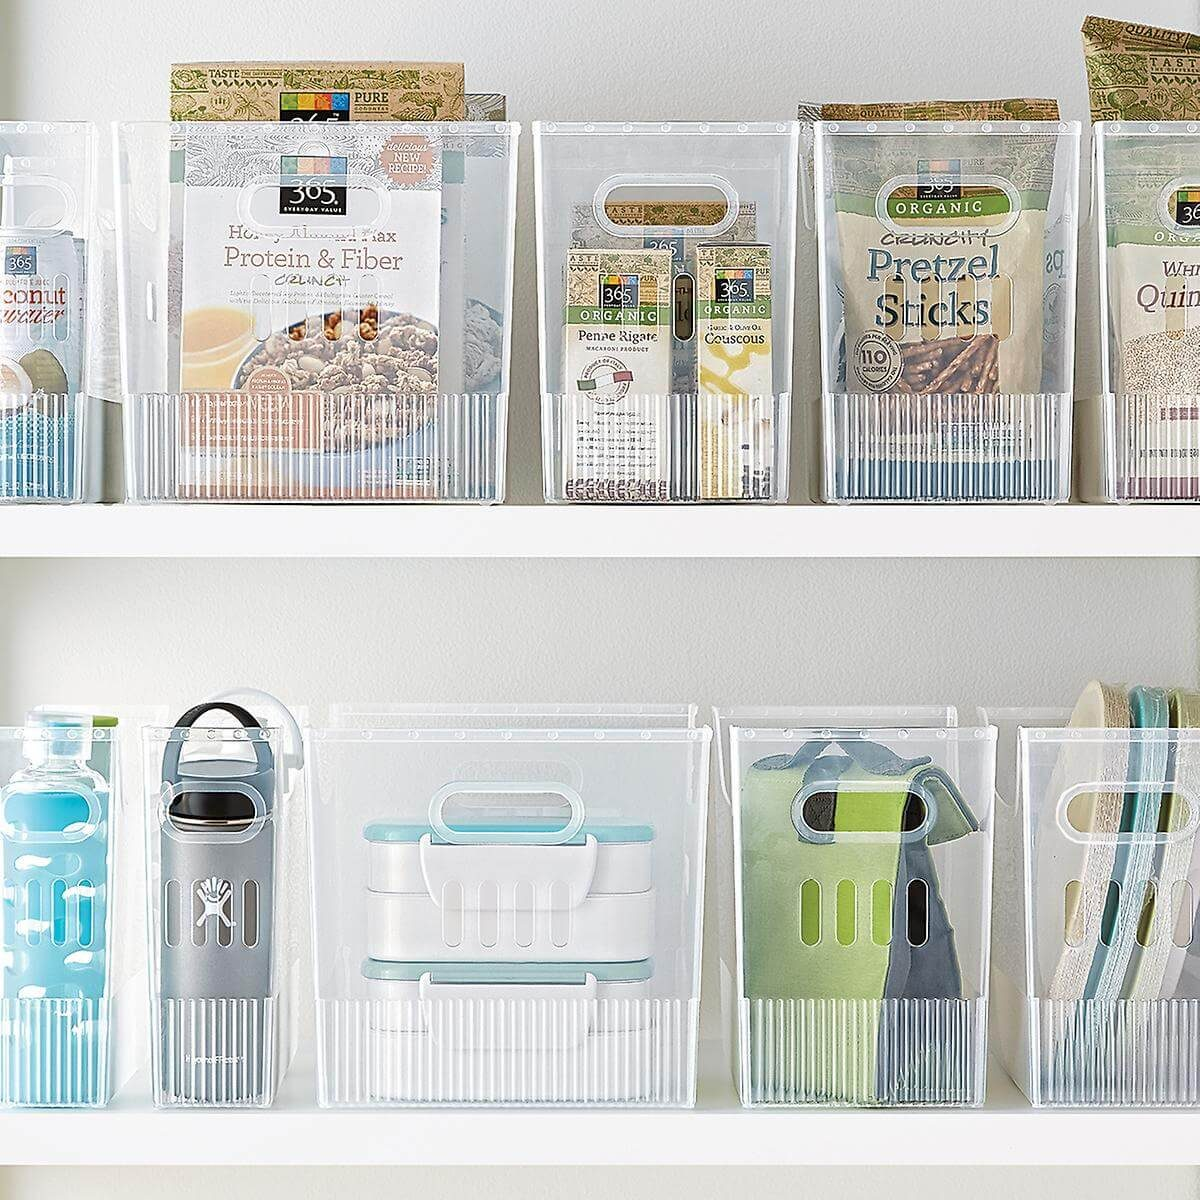 Kitchen Organizer Storage 10 Kitchen Organizer Ideas That Will Change Your Life Taste Of Home